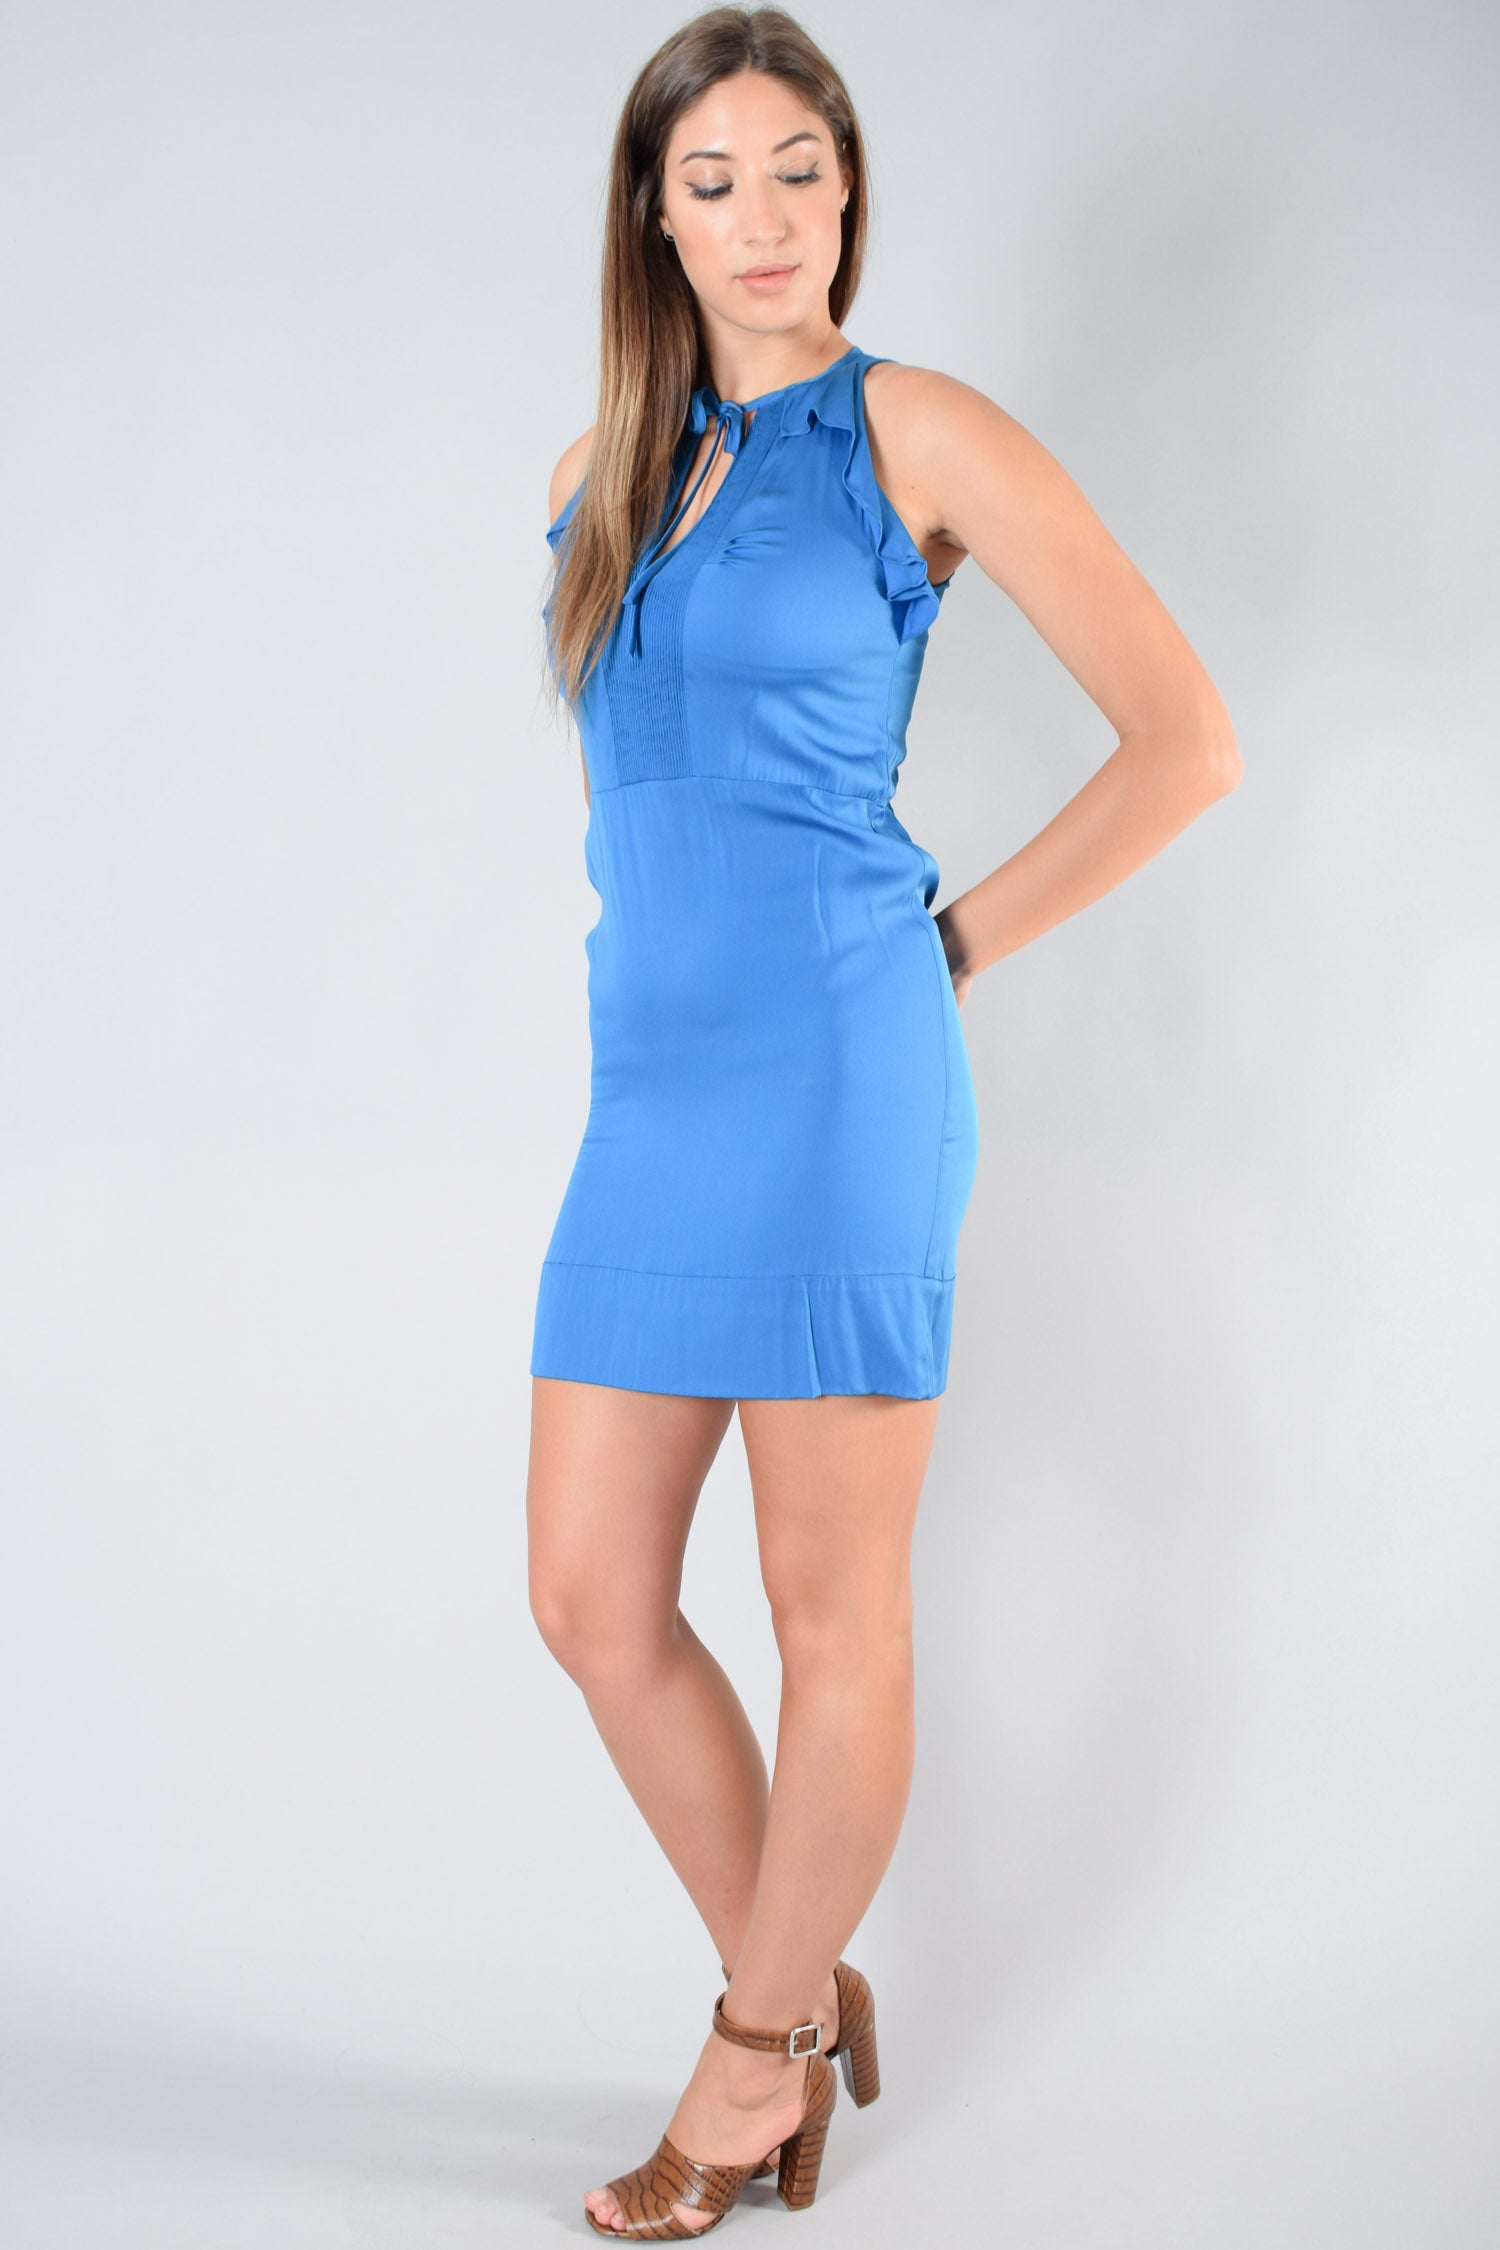 Diane von Furstenberg Blue Silk V-Neck Dress Size 4